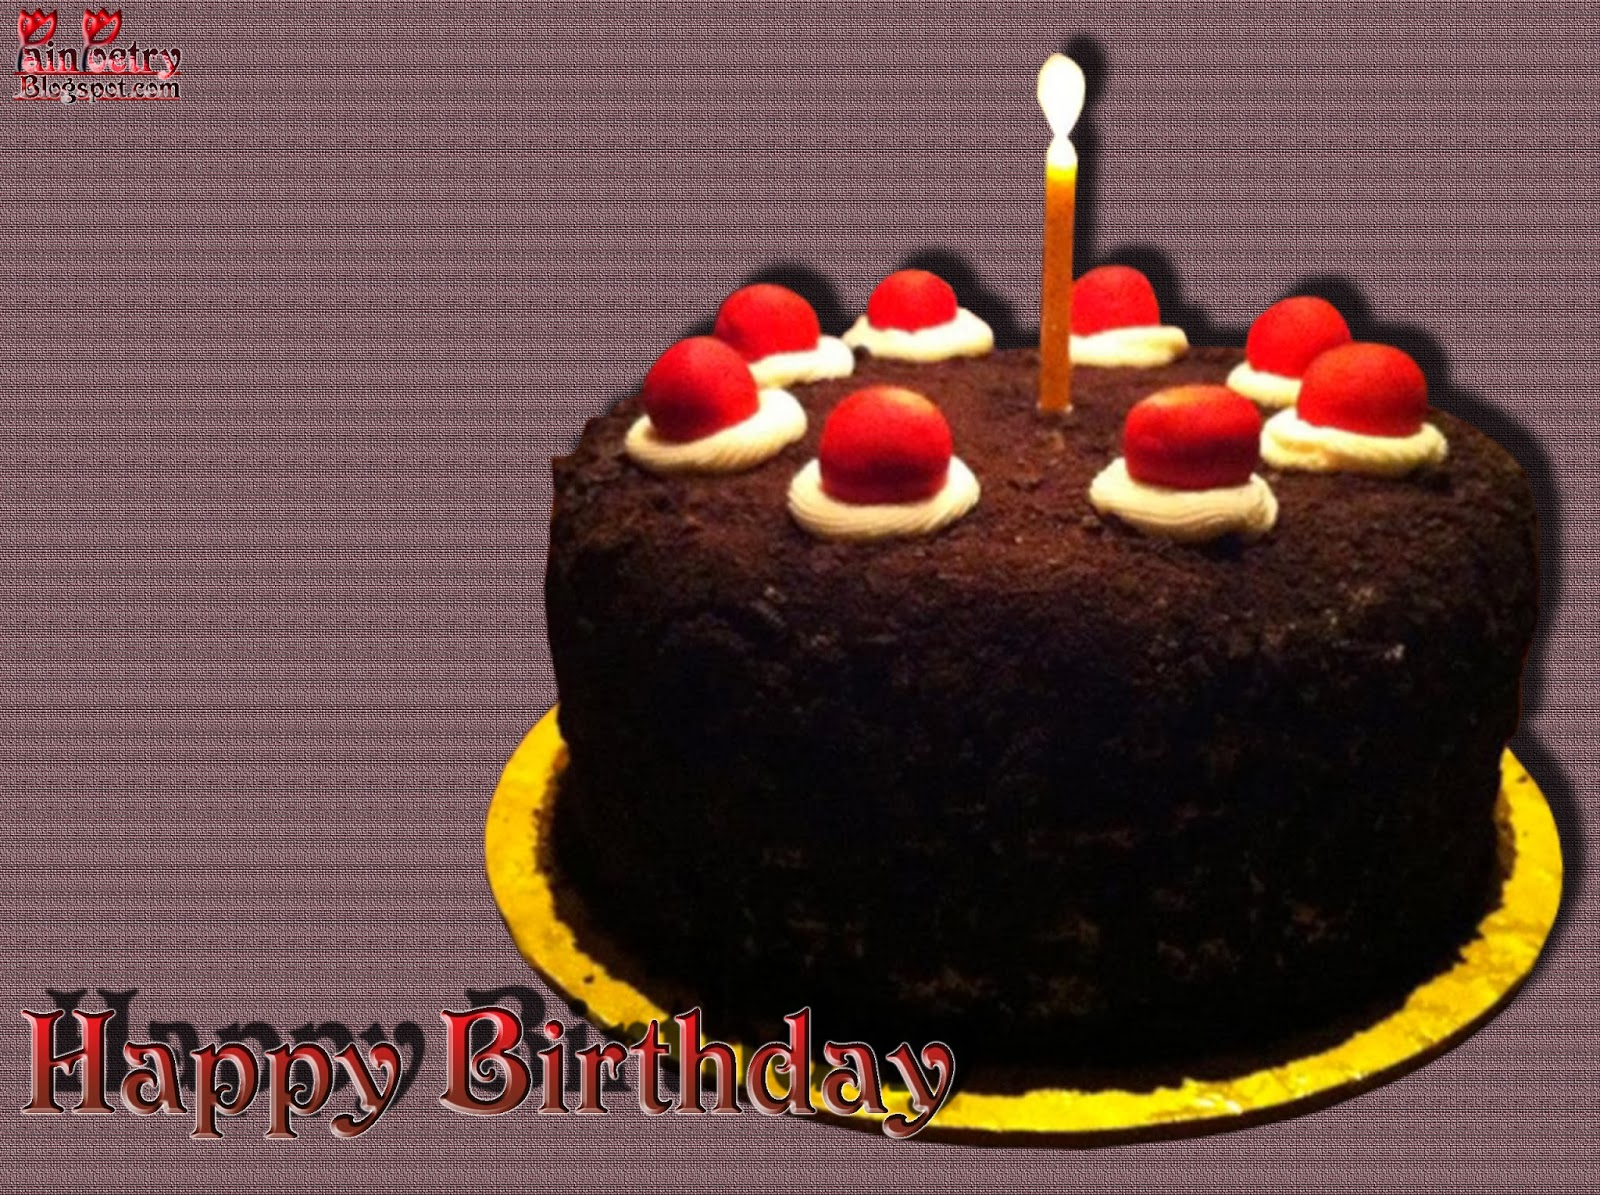 Happy-Birthday-With-Chocolate-Cake-Image-With-Candle-Image-HD-Wide